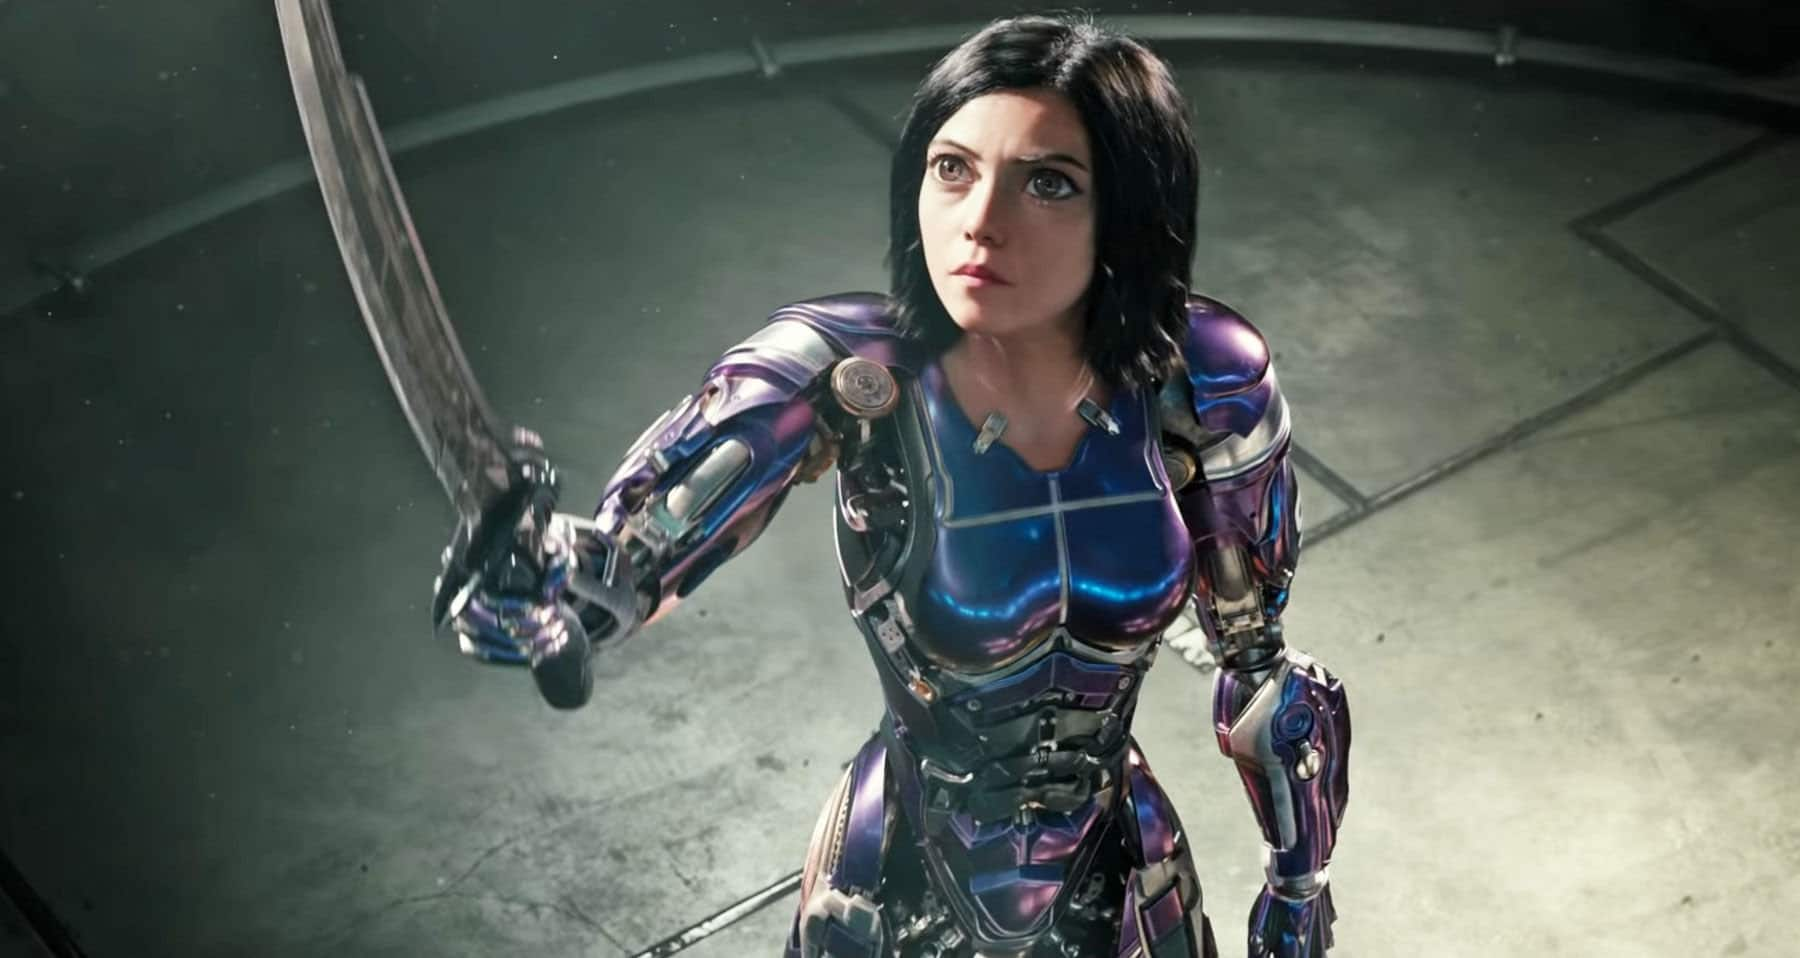 Alita: Battle Angel - Exhilarating Action and Stunning Visuals